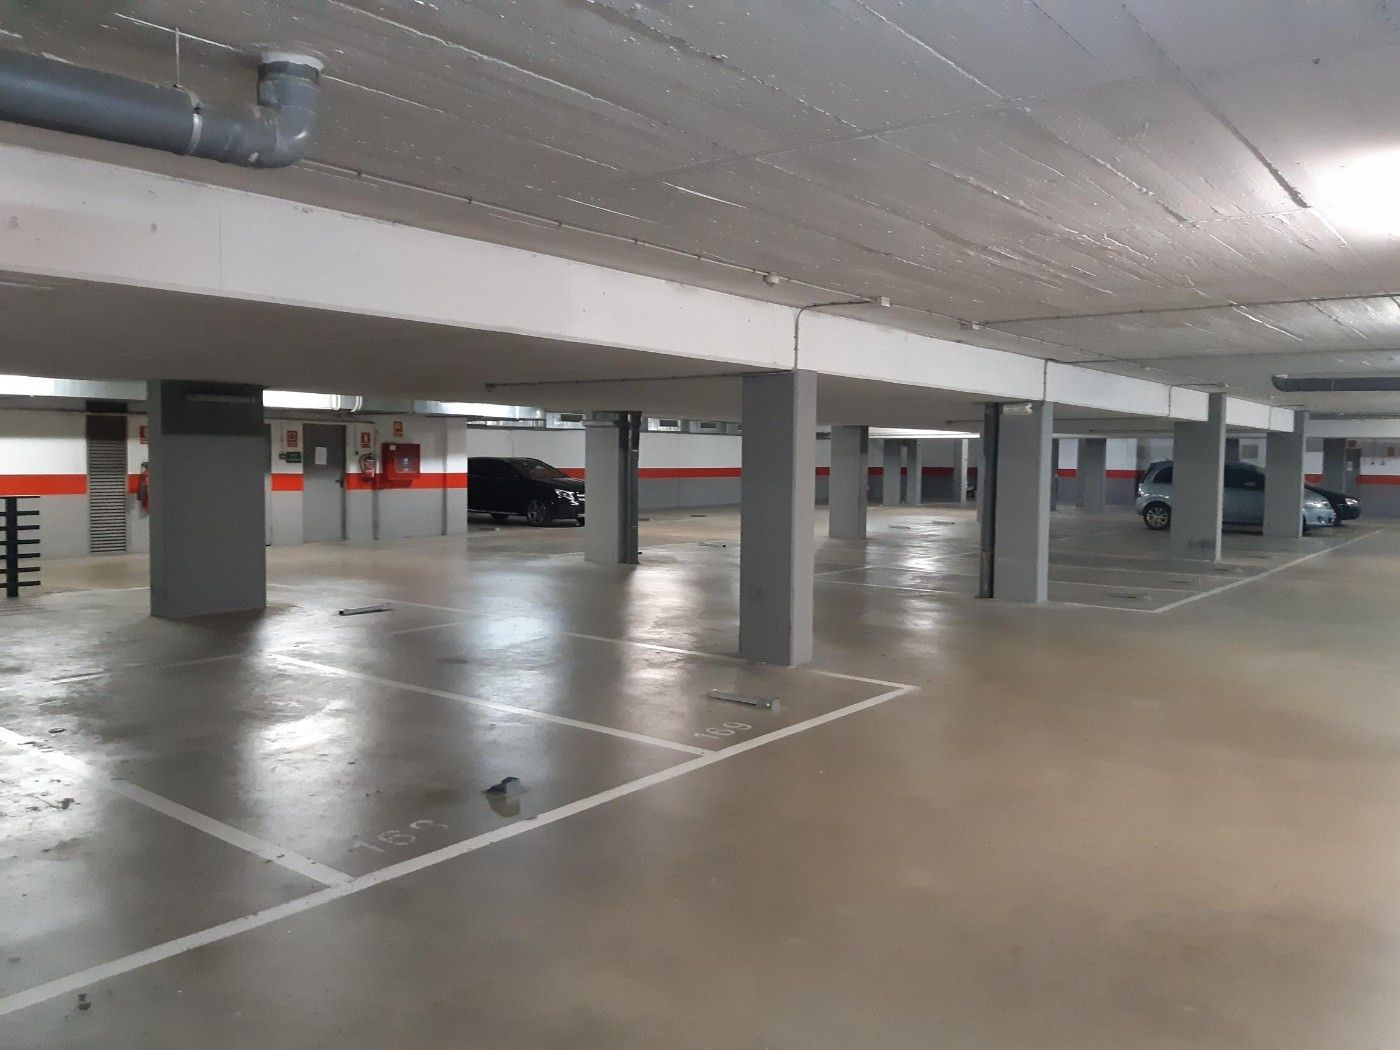 Parking coche en Passeig pau claris, 62